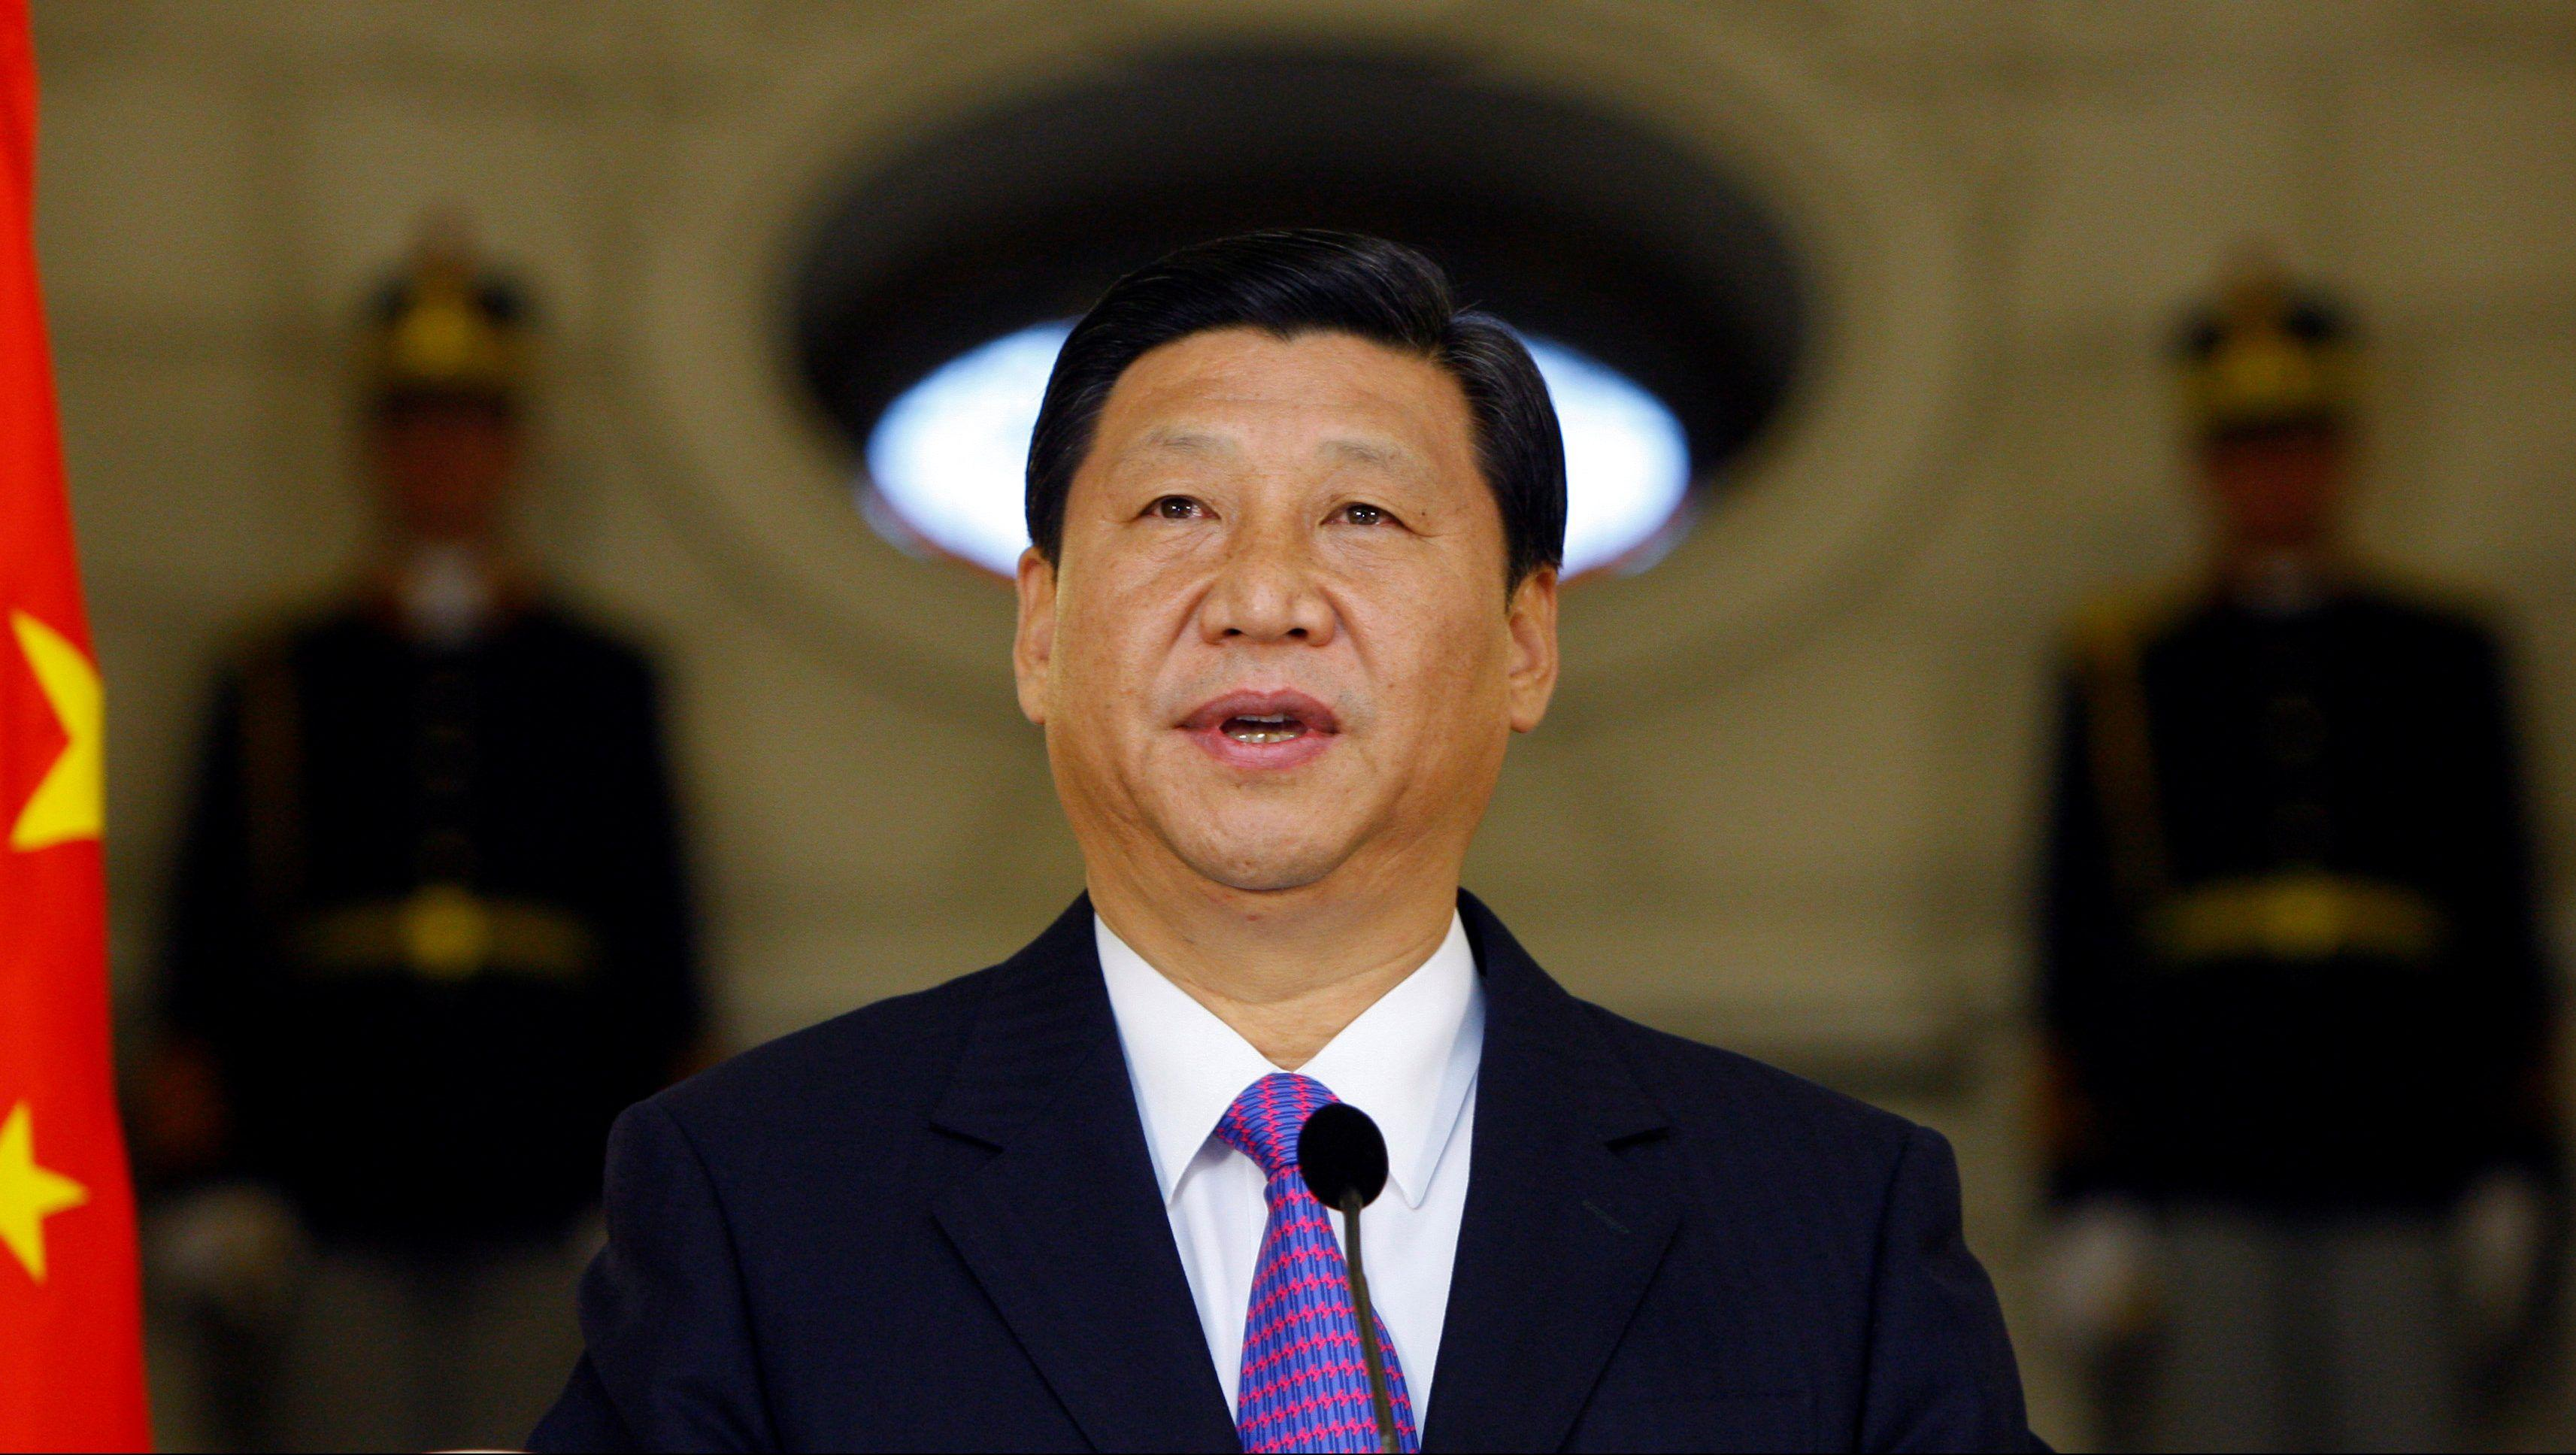 Xi Jinping promised legal reform in China, but forget about judicial independence